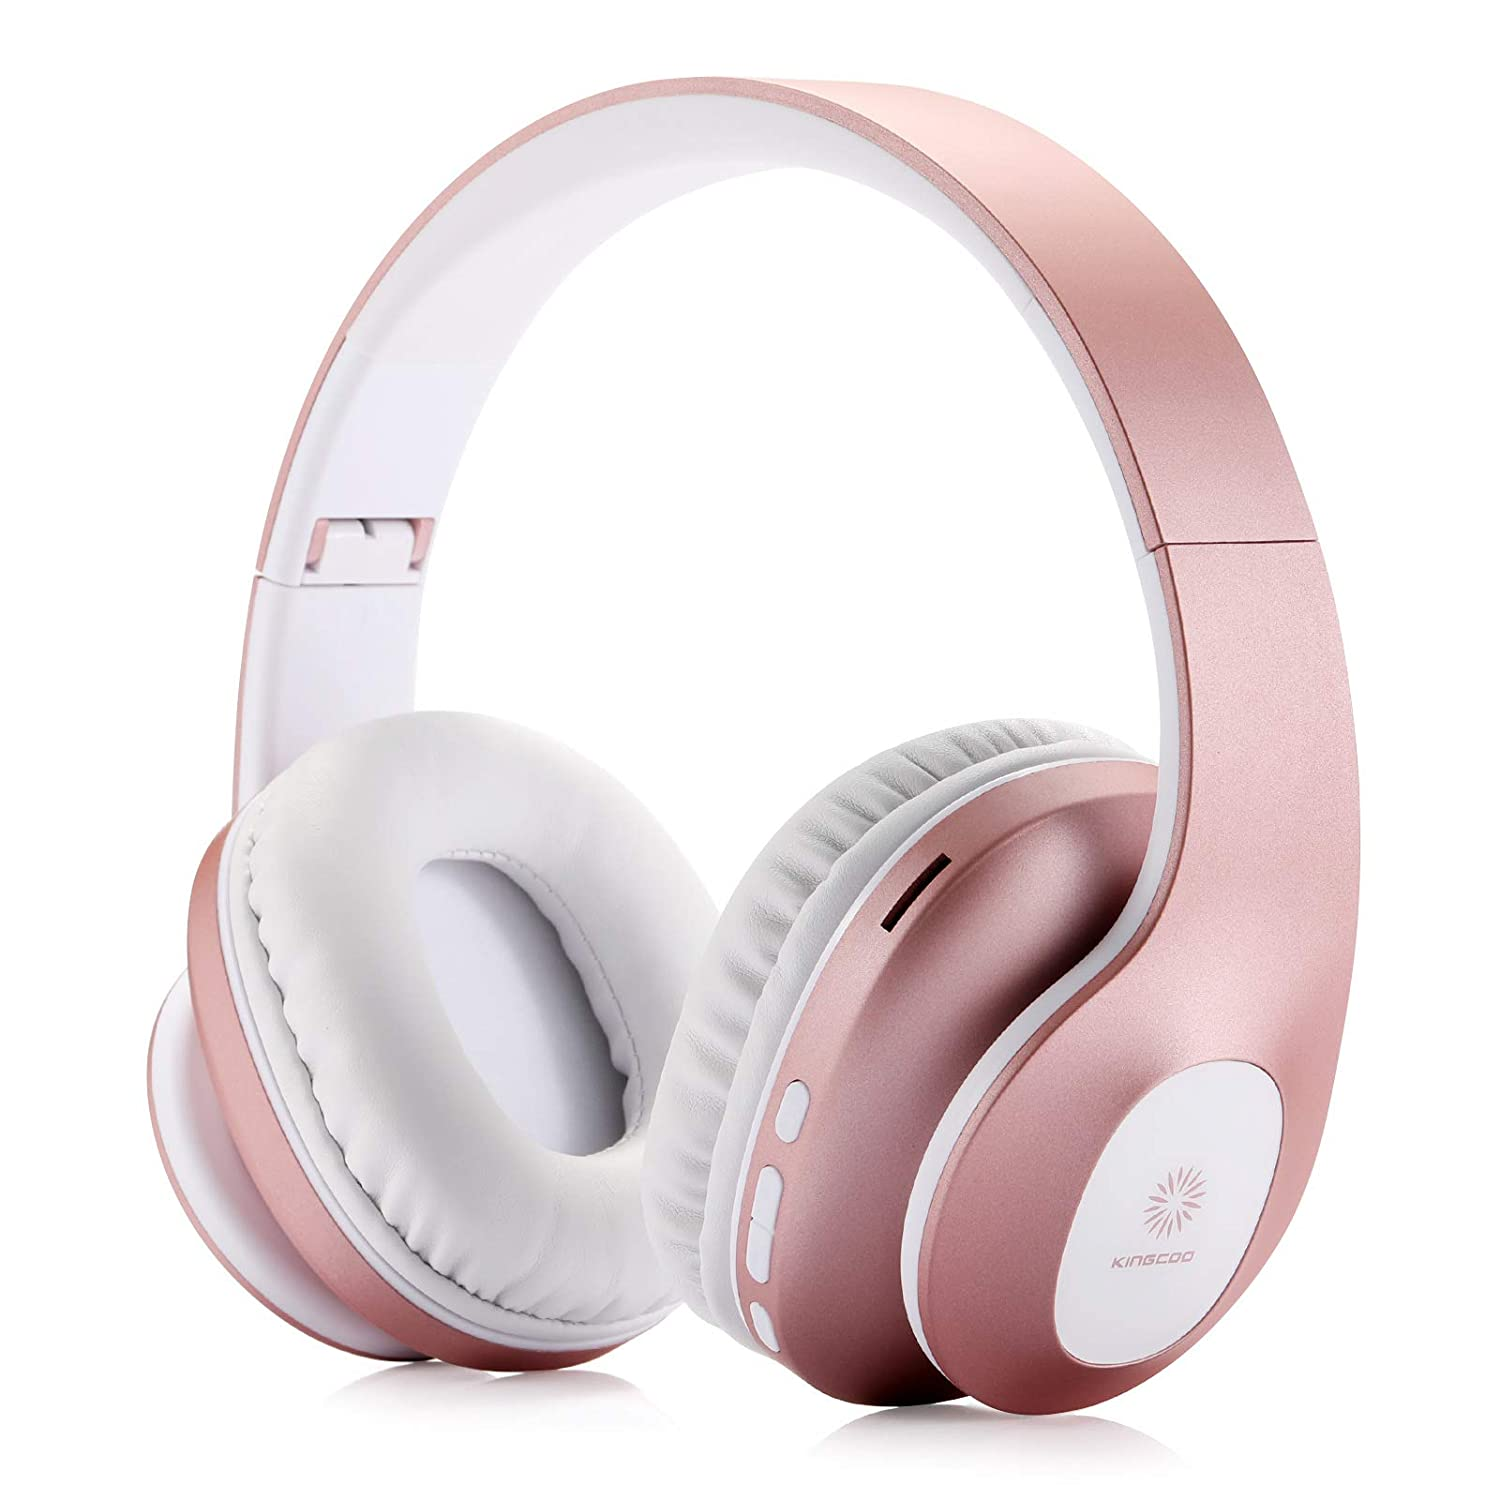 Bluetooth Over Ear Headphones,KINGCOO Wireless Headphones V5.0 with Microphone, Foldable & Lightweight Headset, Support Tf Card MP3 Mode and Fm Radio for Cellphones Laptop TV (Rose Gold)